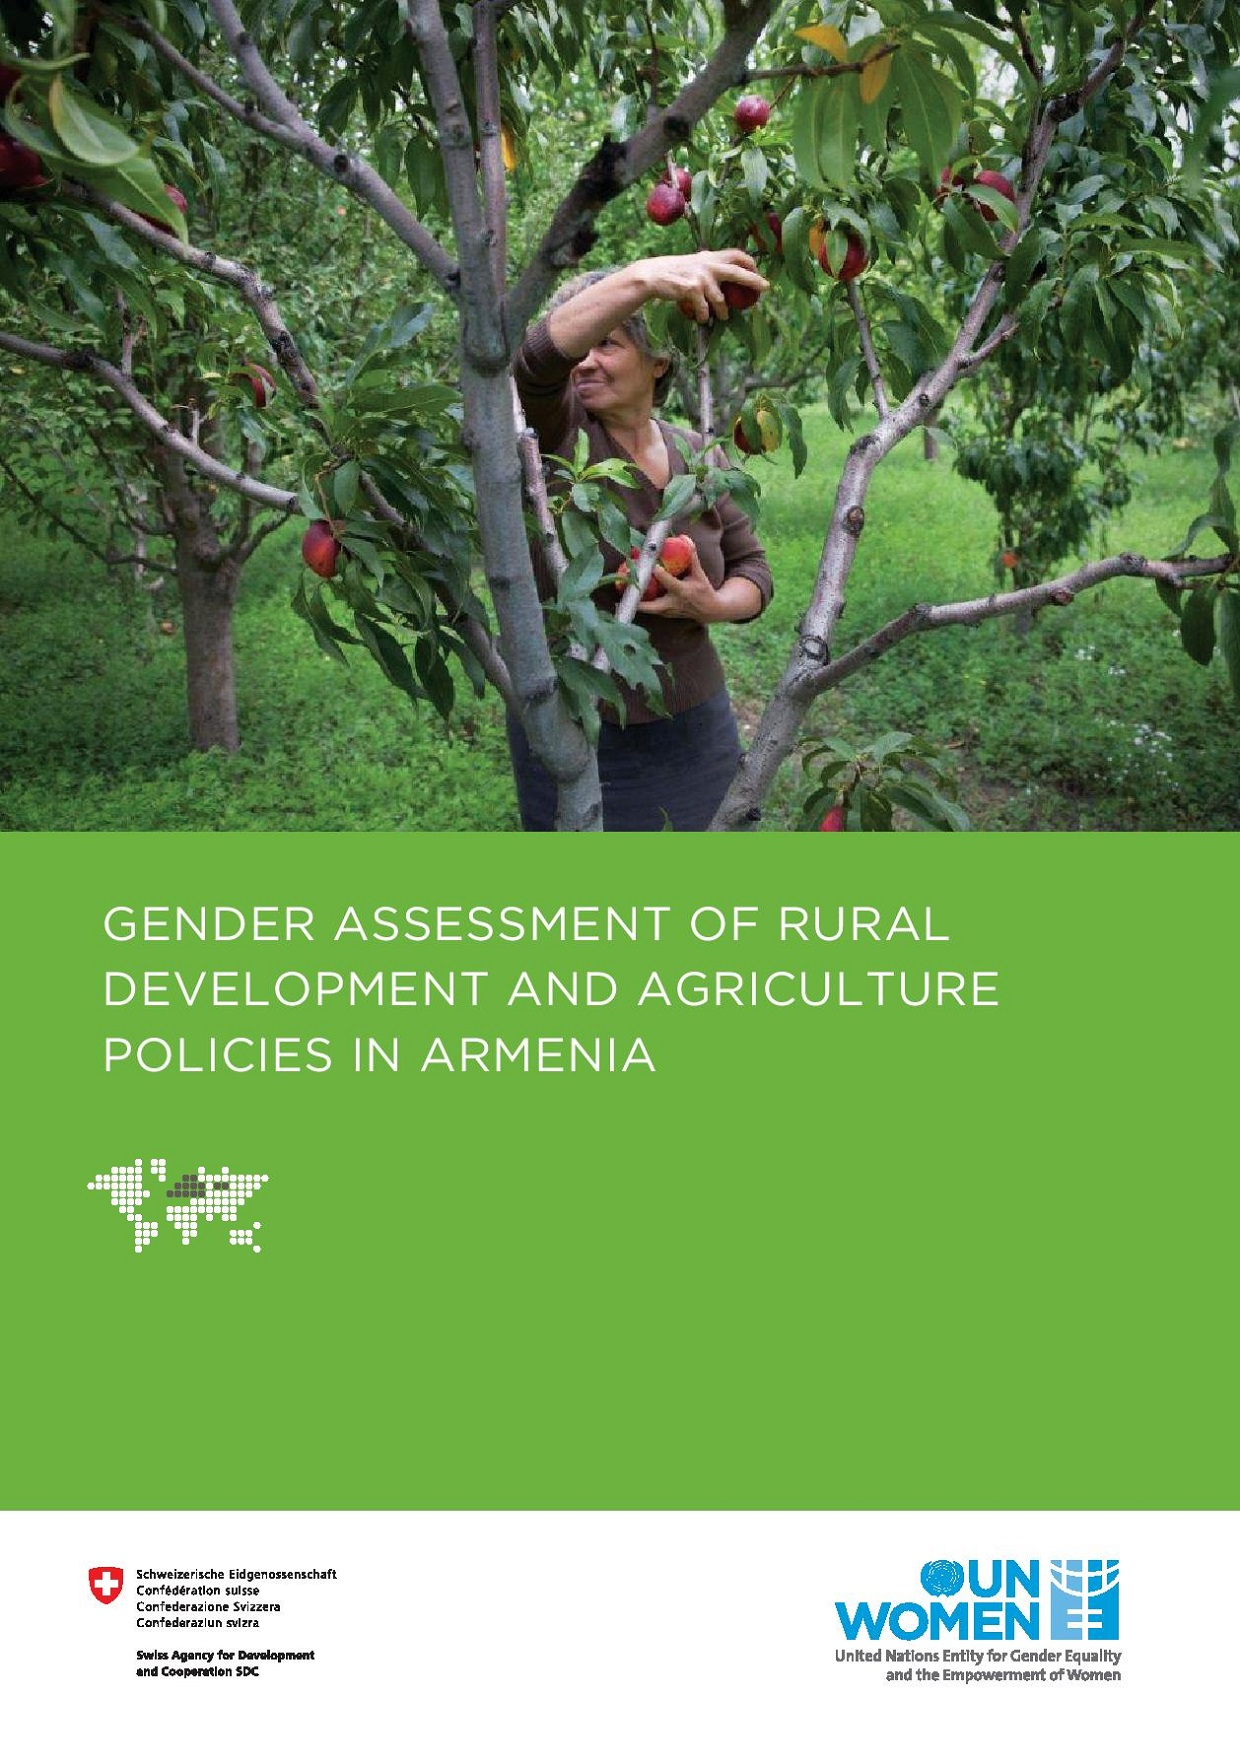 Gender Assessment of Rural Development and Agriculture Policies in Armenia